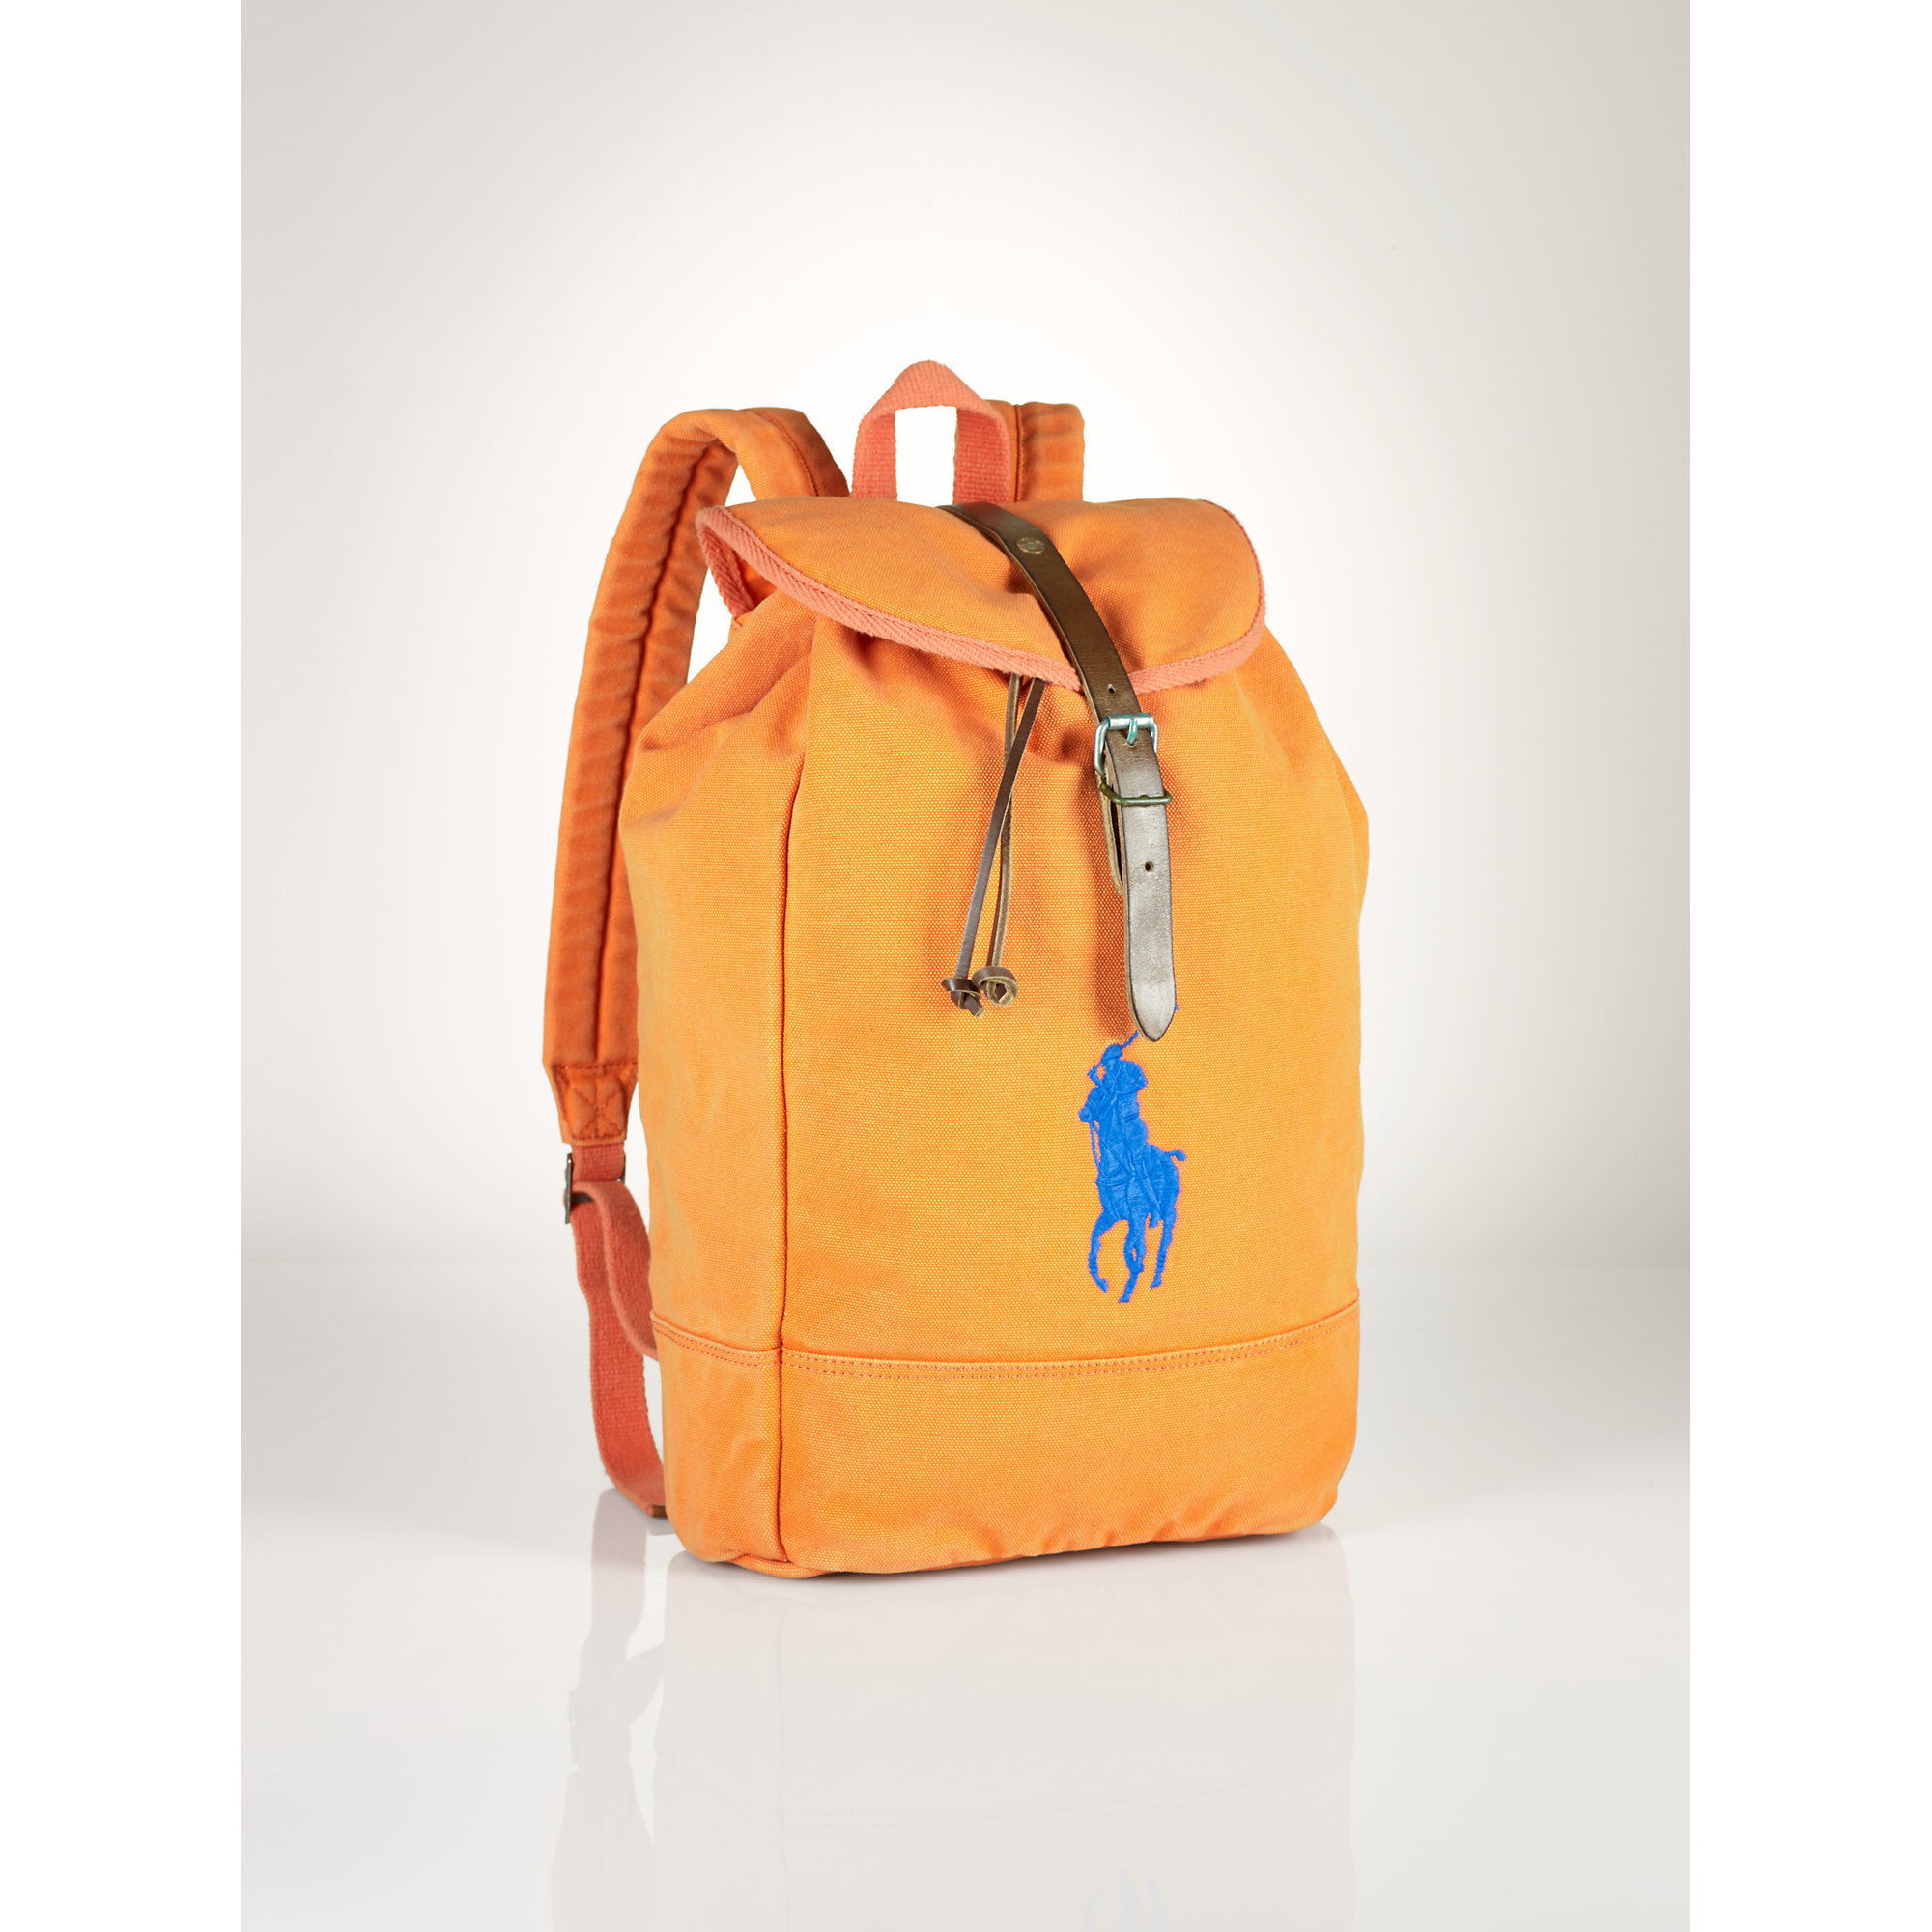 Lyst - Polo Ralph Lauren Big Pony Backpack in Orange for Men a2a97eea1204a